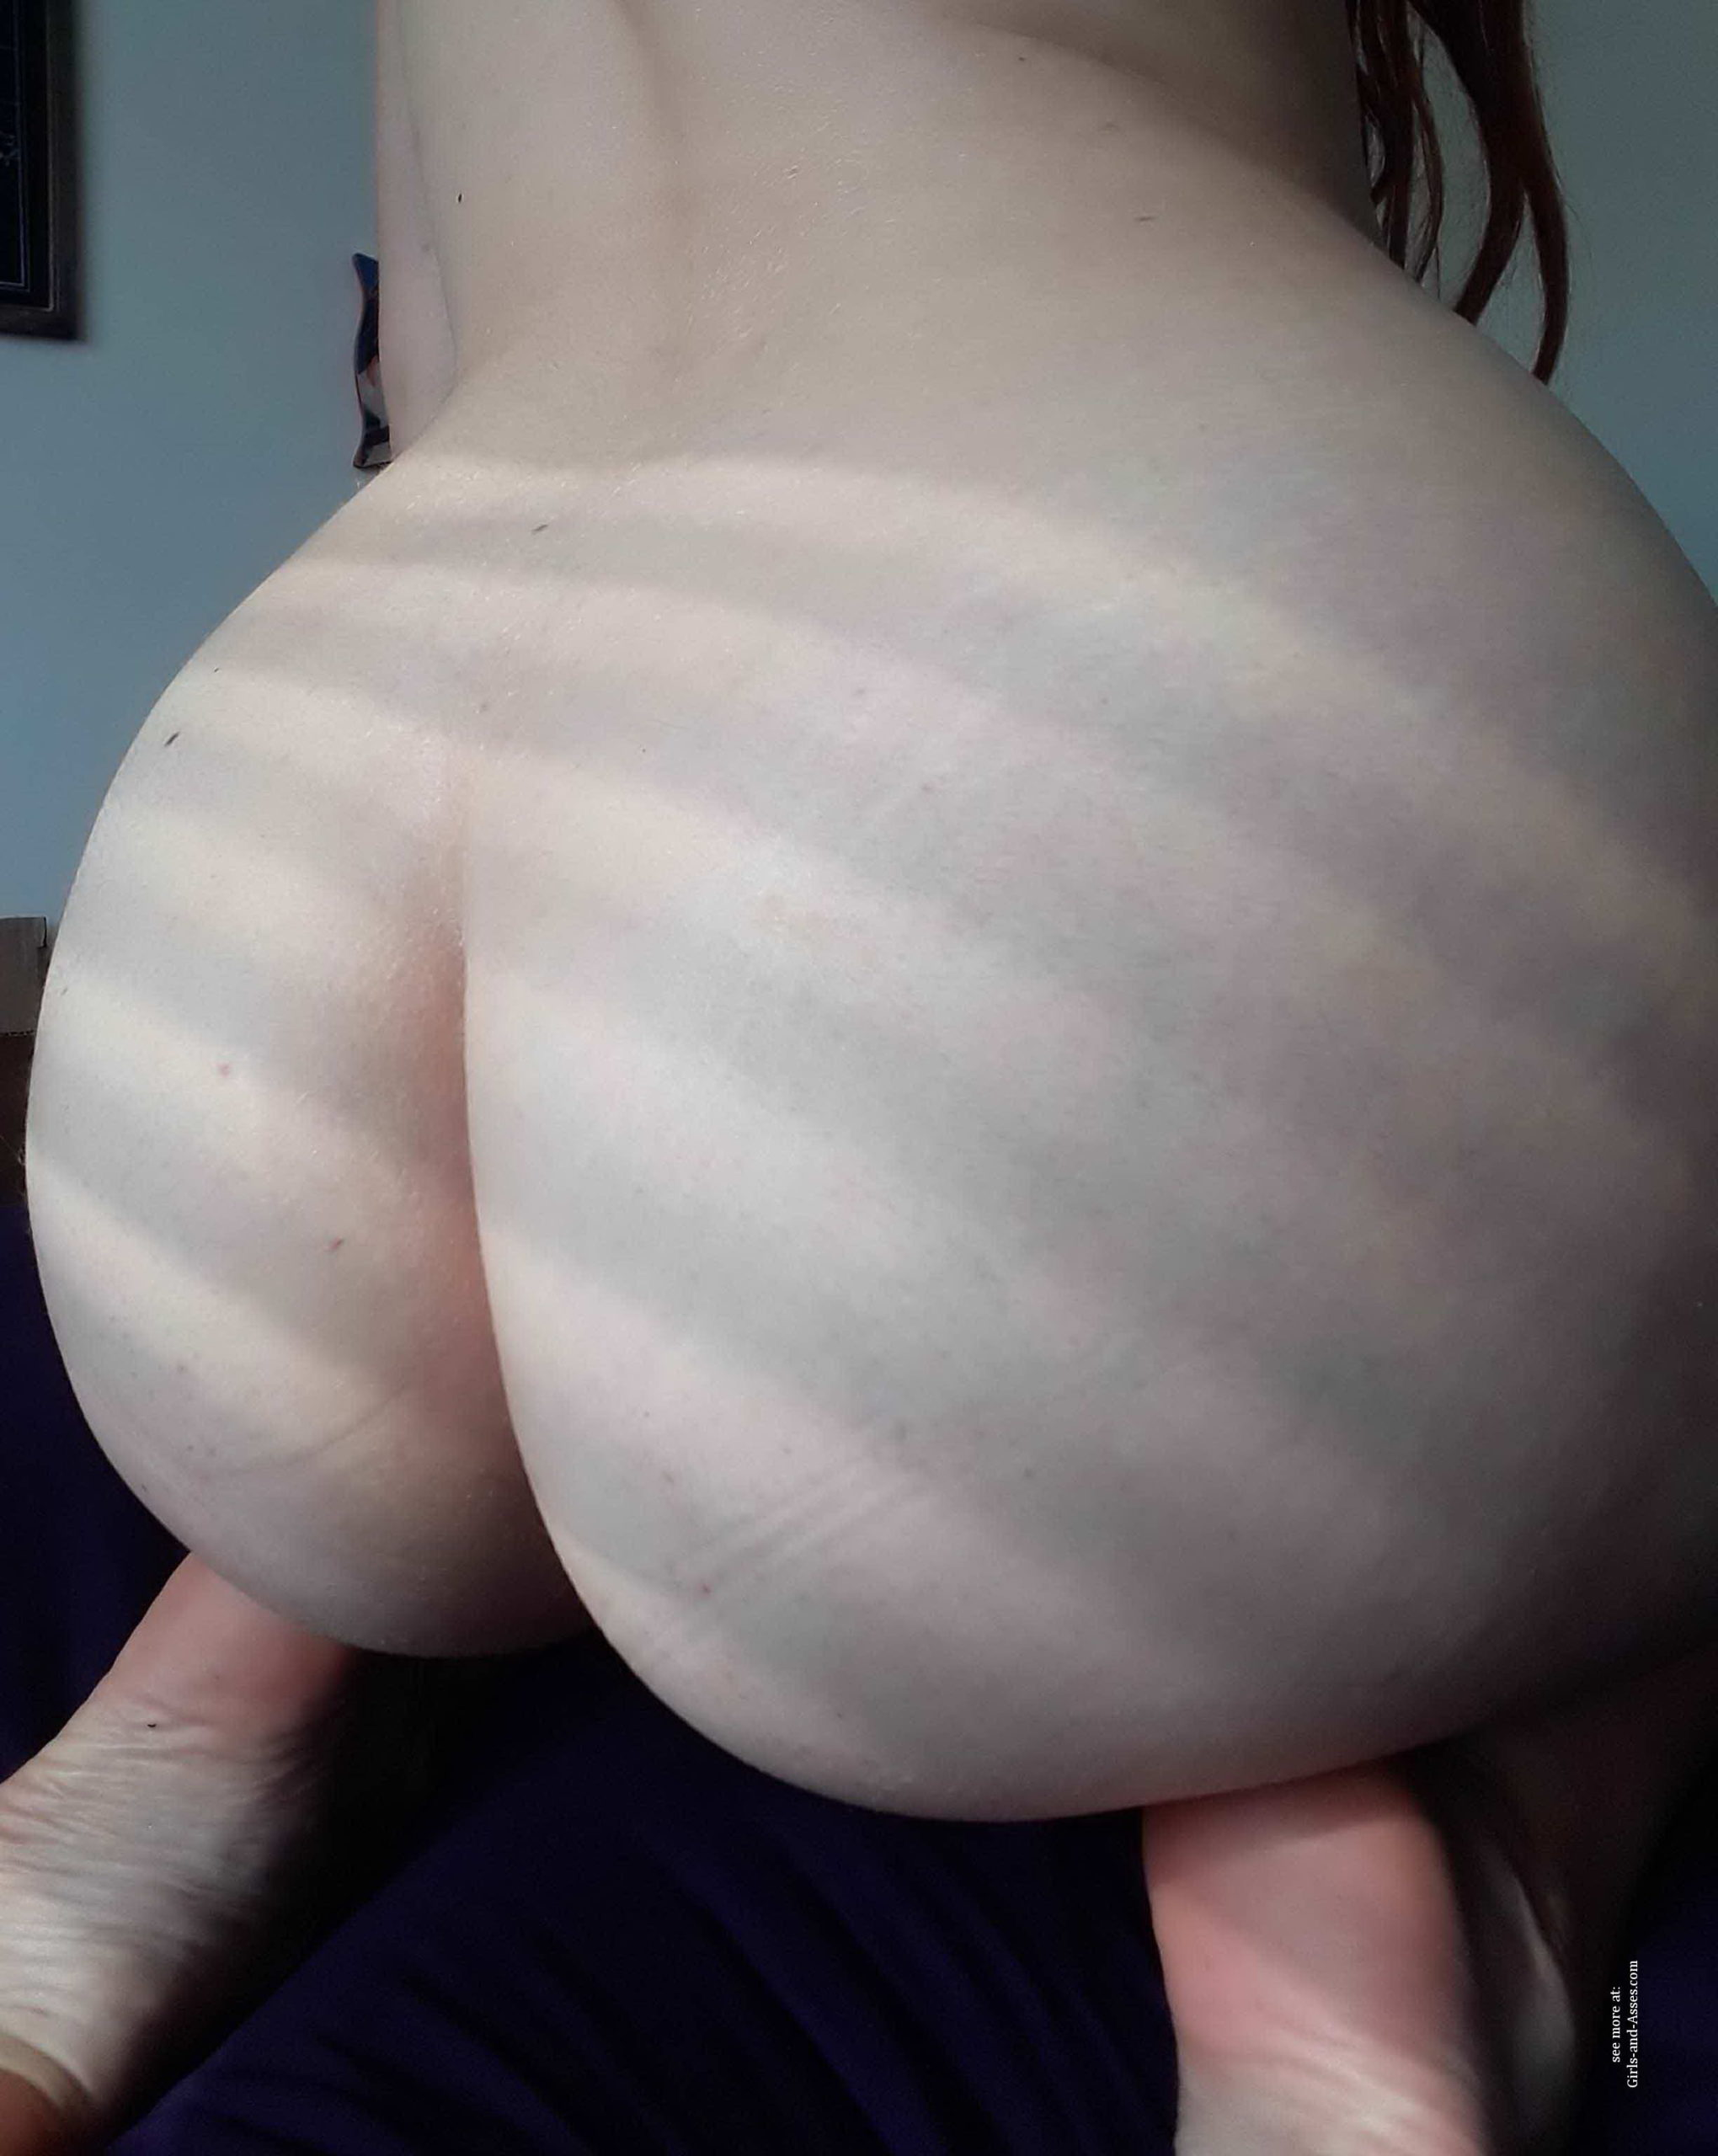 amateur hot homemade nude ass 03452 scaled